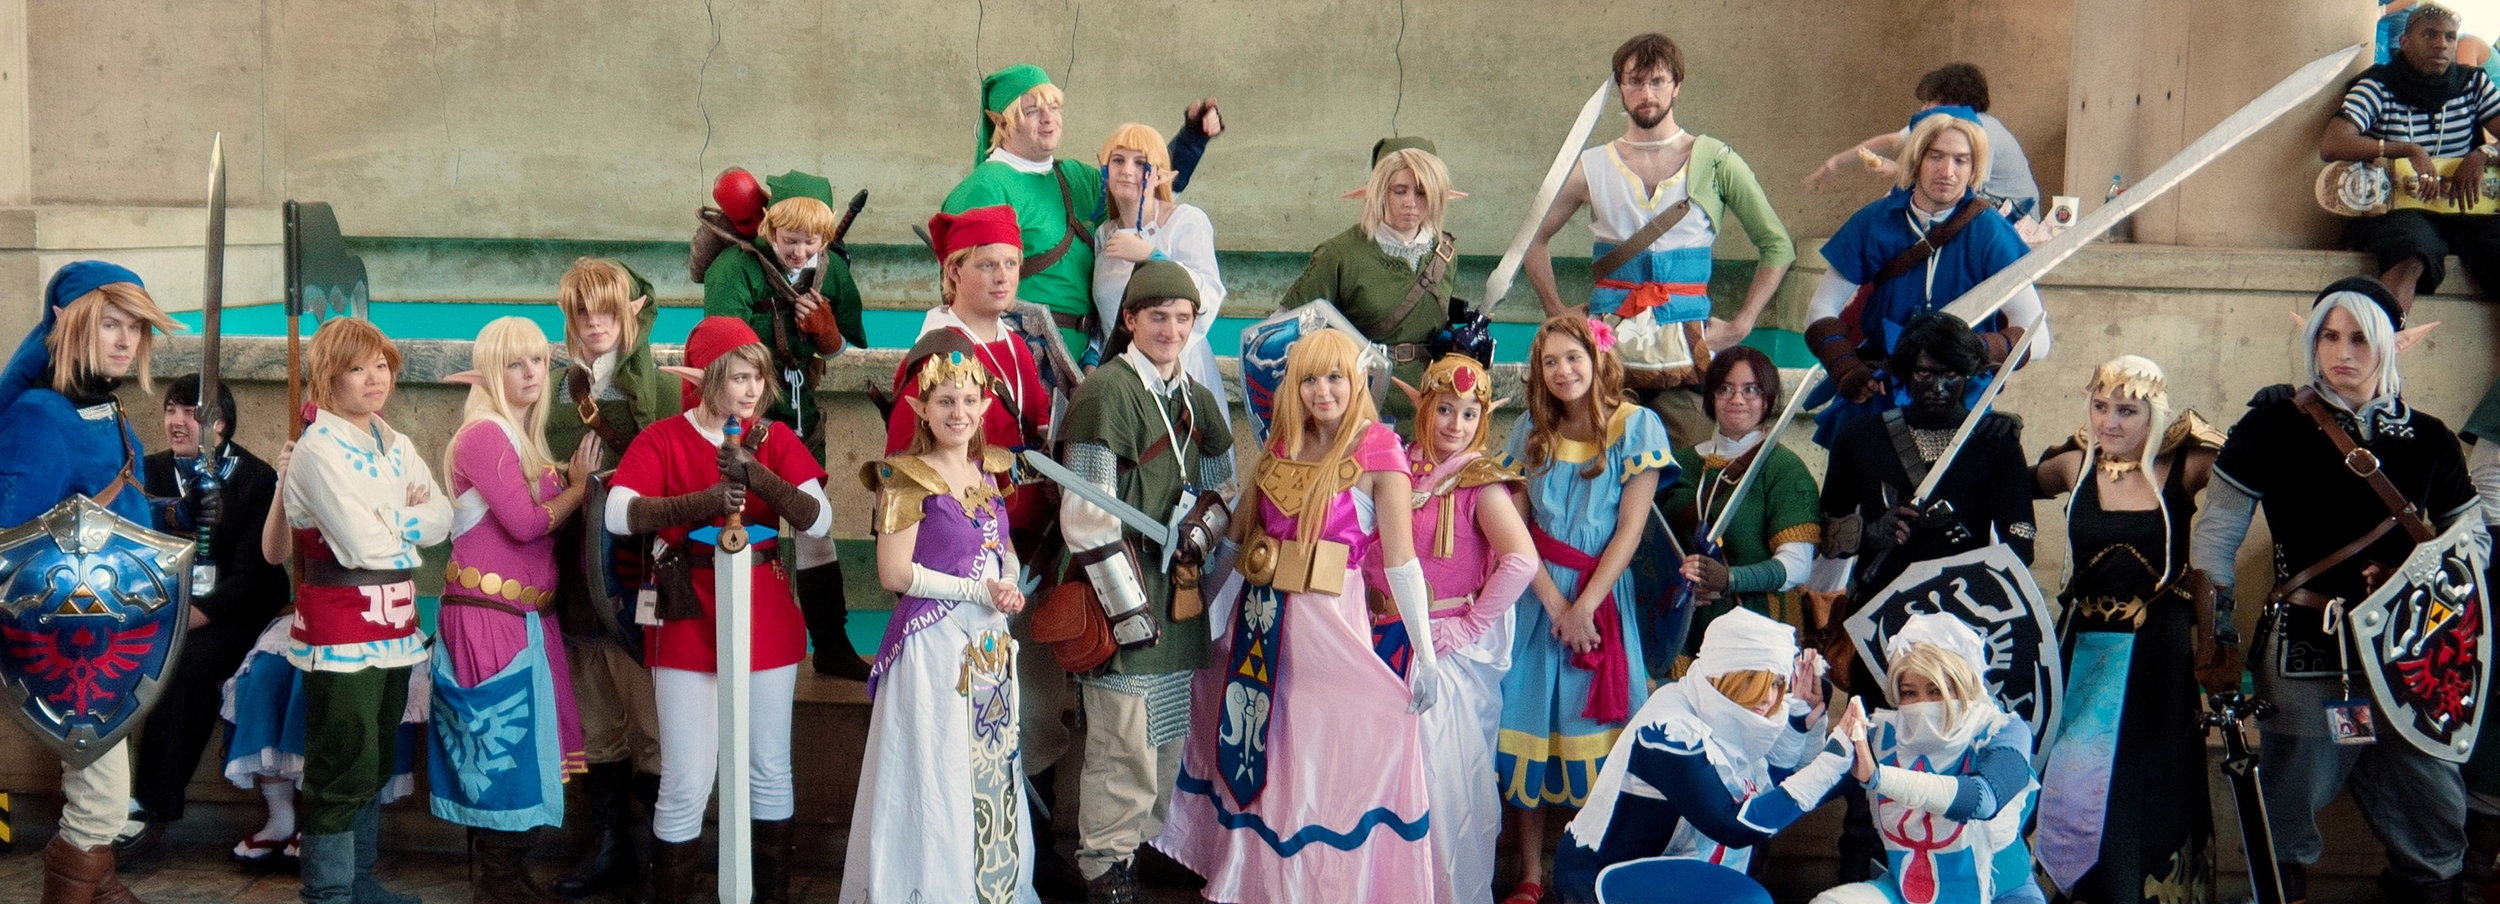 Cosplay rules at the Anime festival  Otakon , which touches down in Washington, D.C. this August.